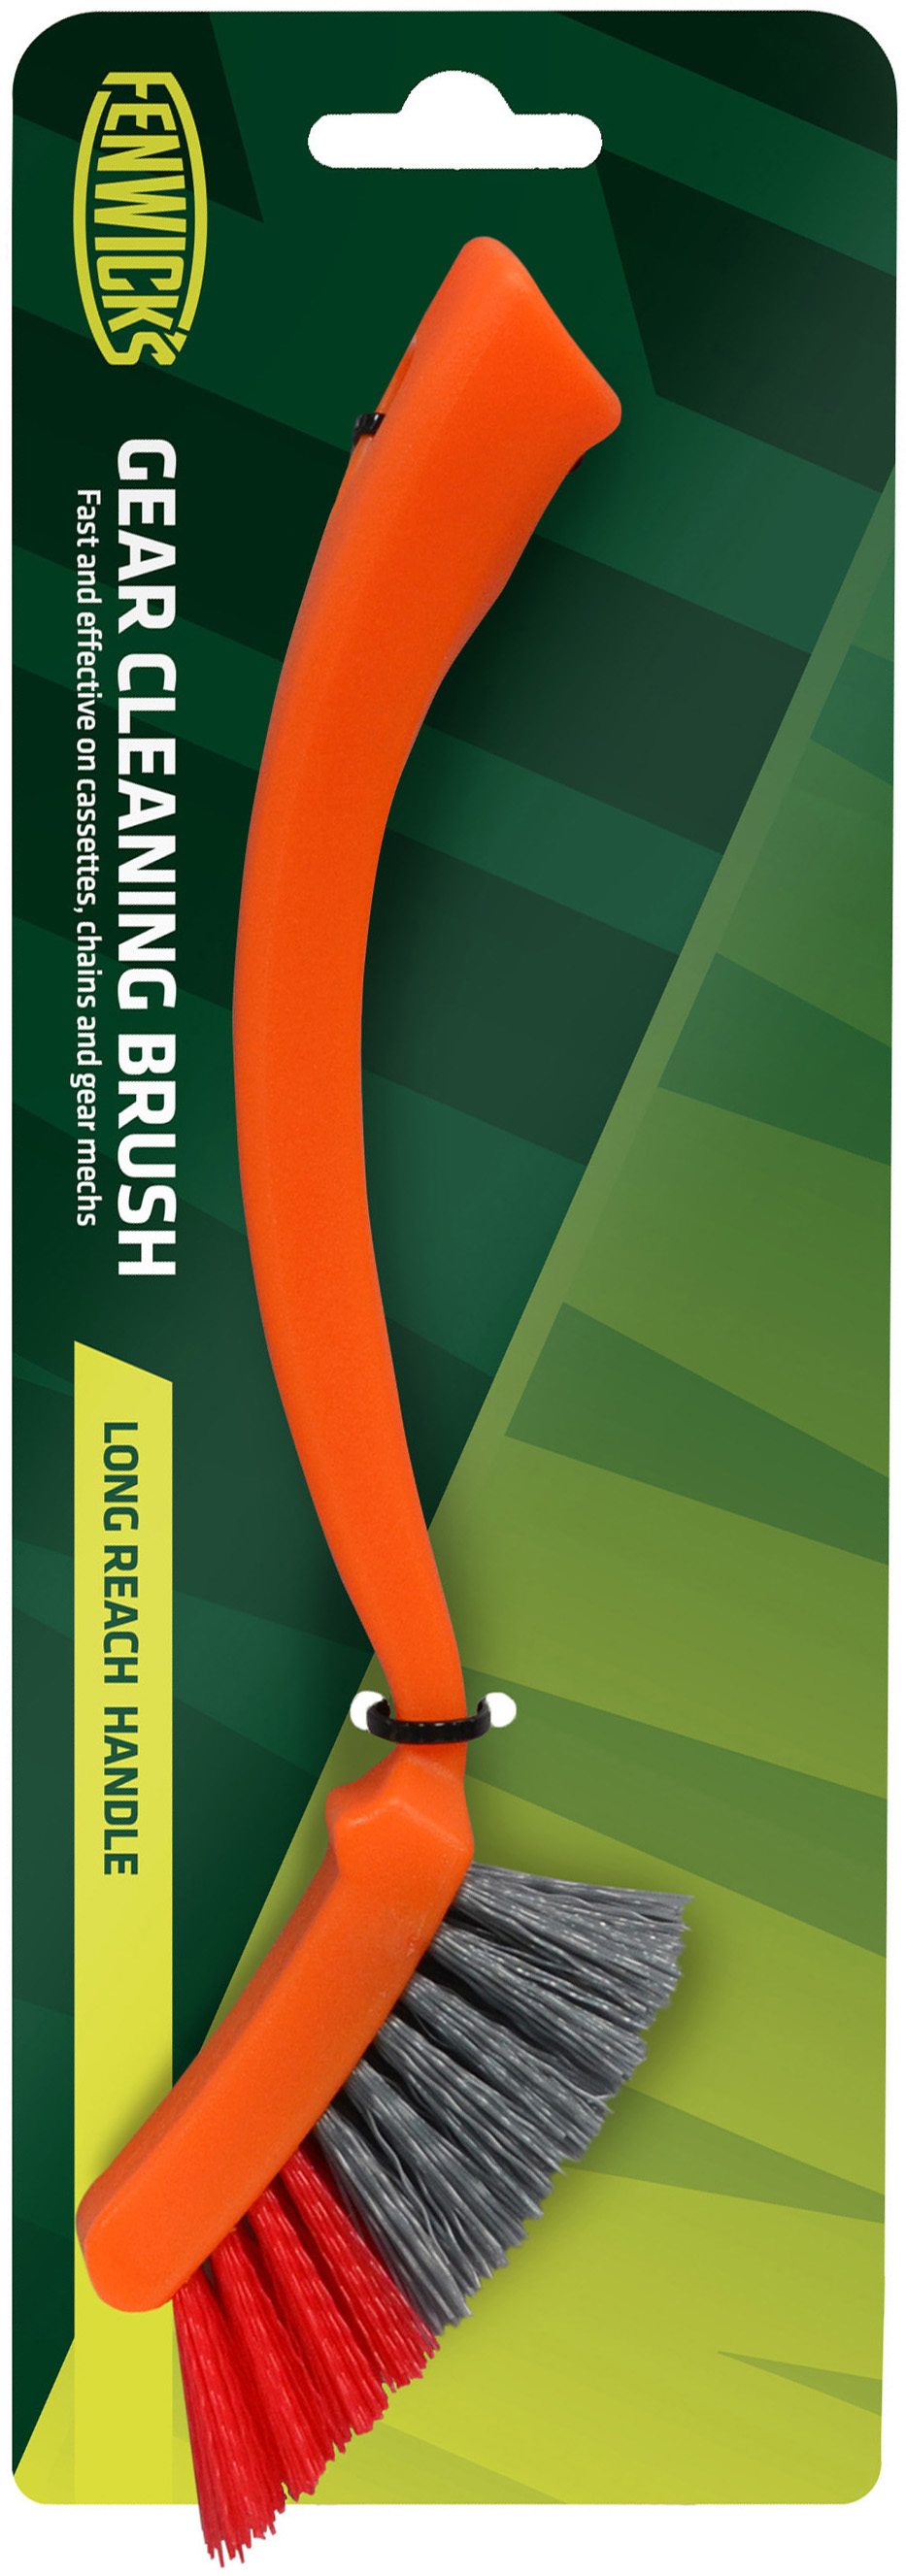 Fenwicks Gear Cleaning Brush | polish_and_lubricant_component